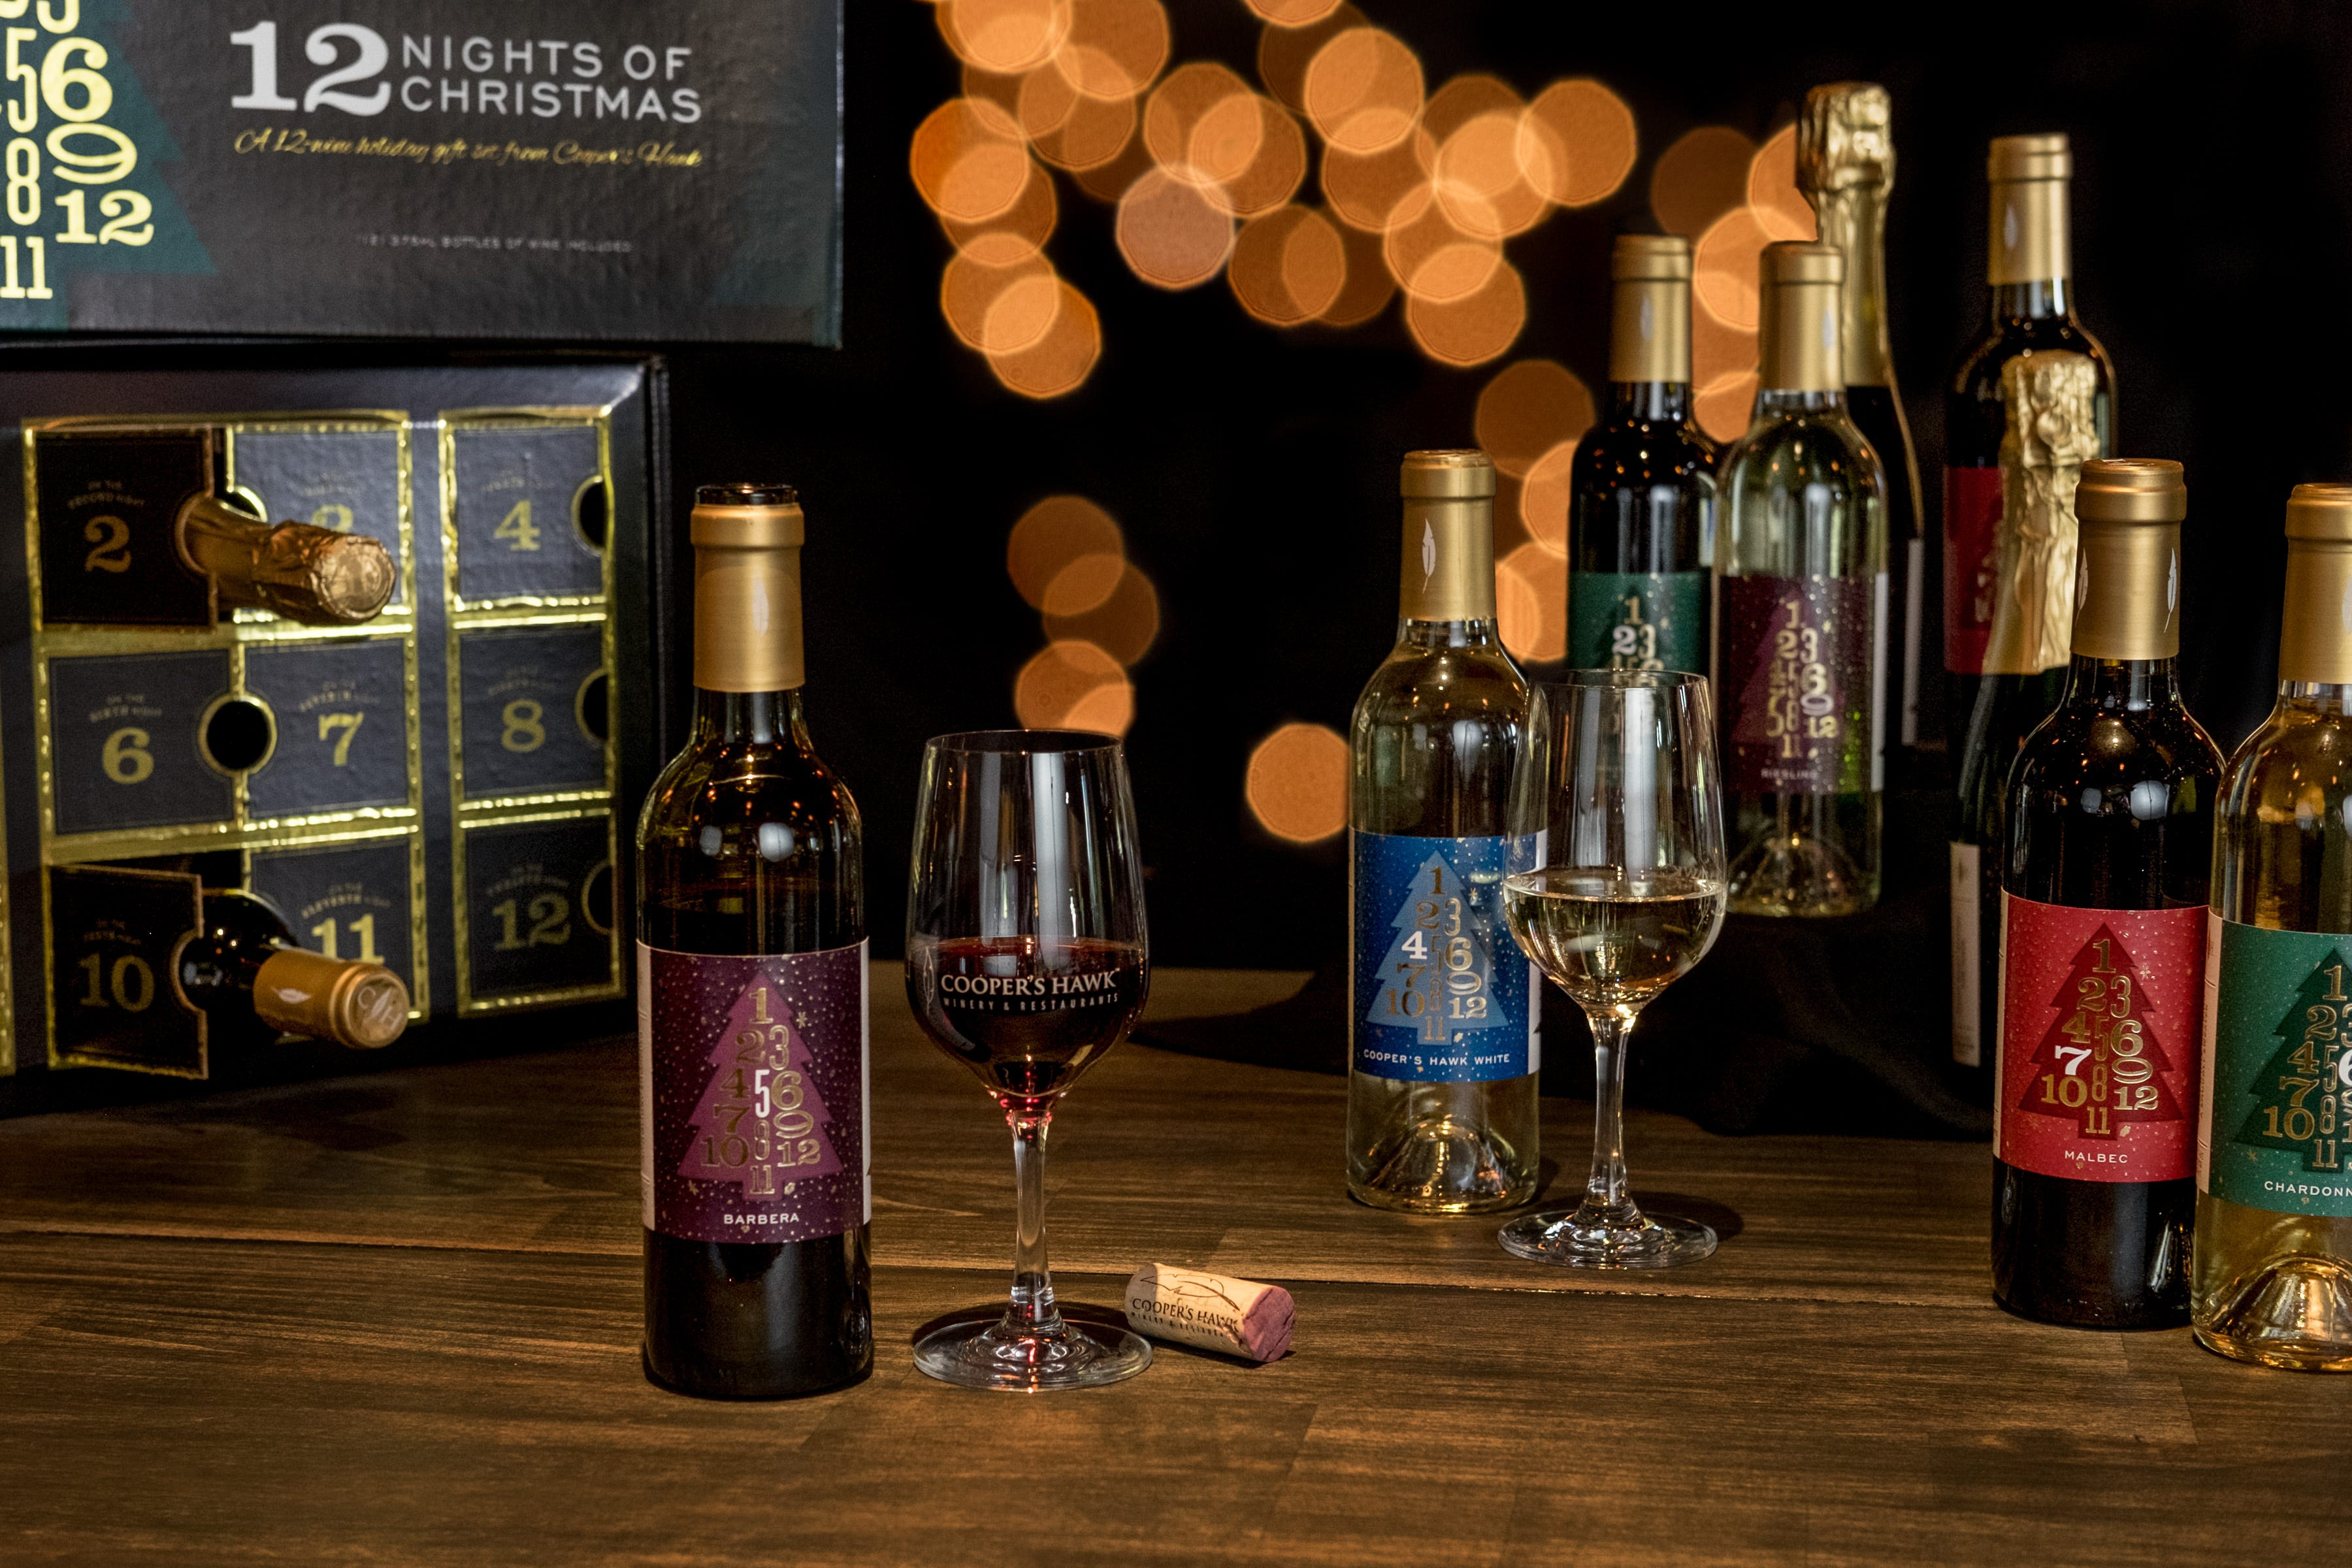 Aldi wines for christmas 2019 gift